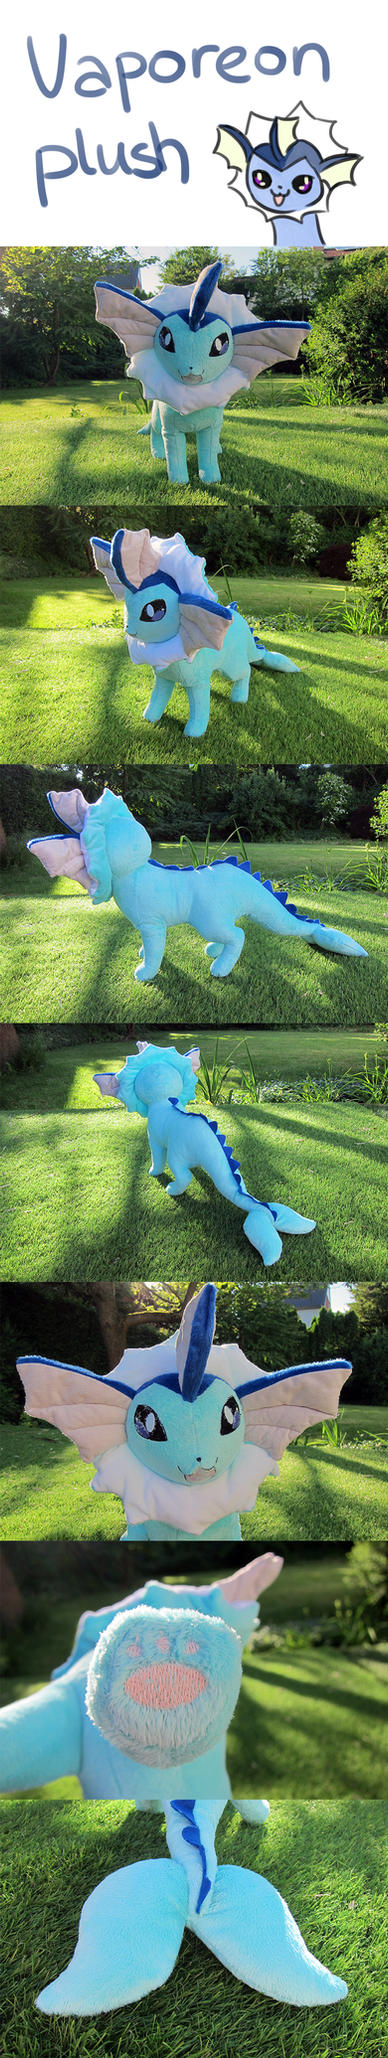 Vaporeon Plush --- for sale --- by Luminous-Luchador